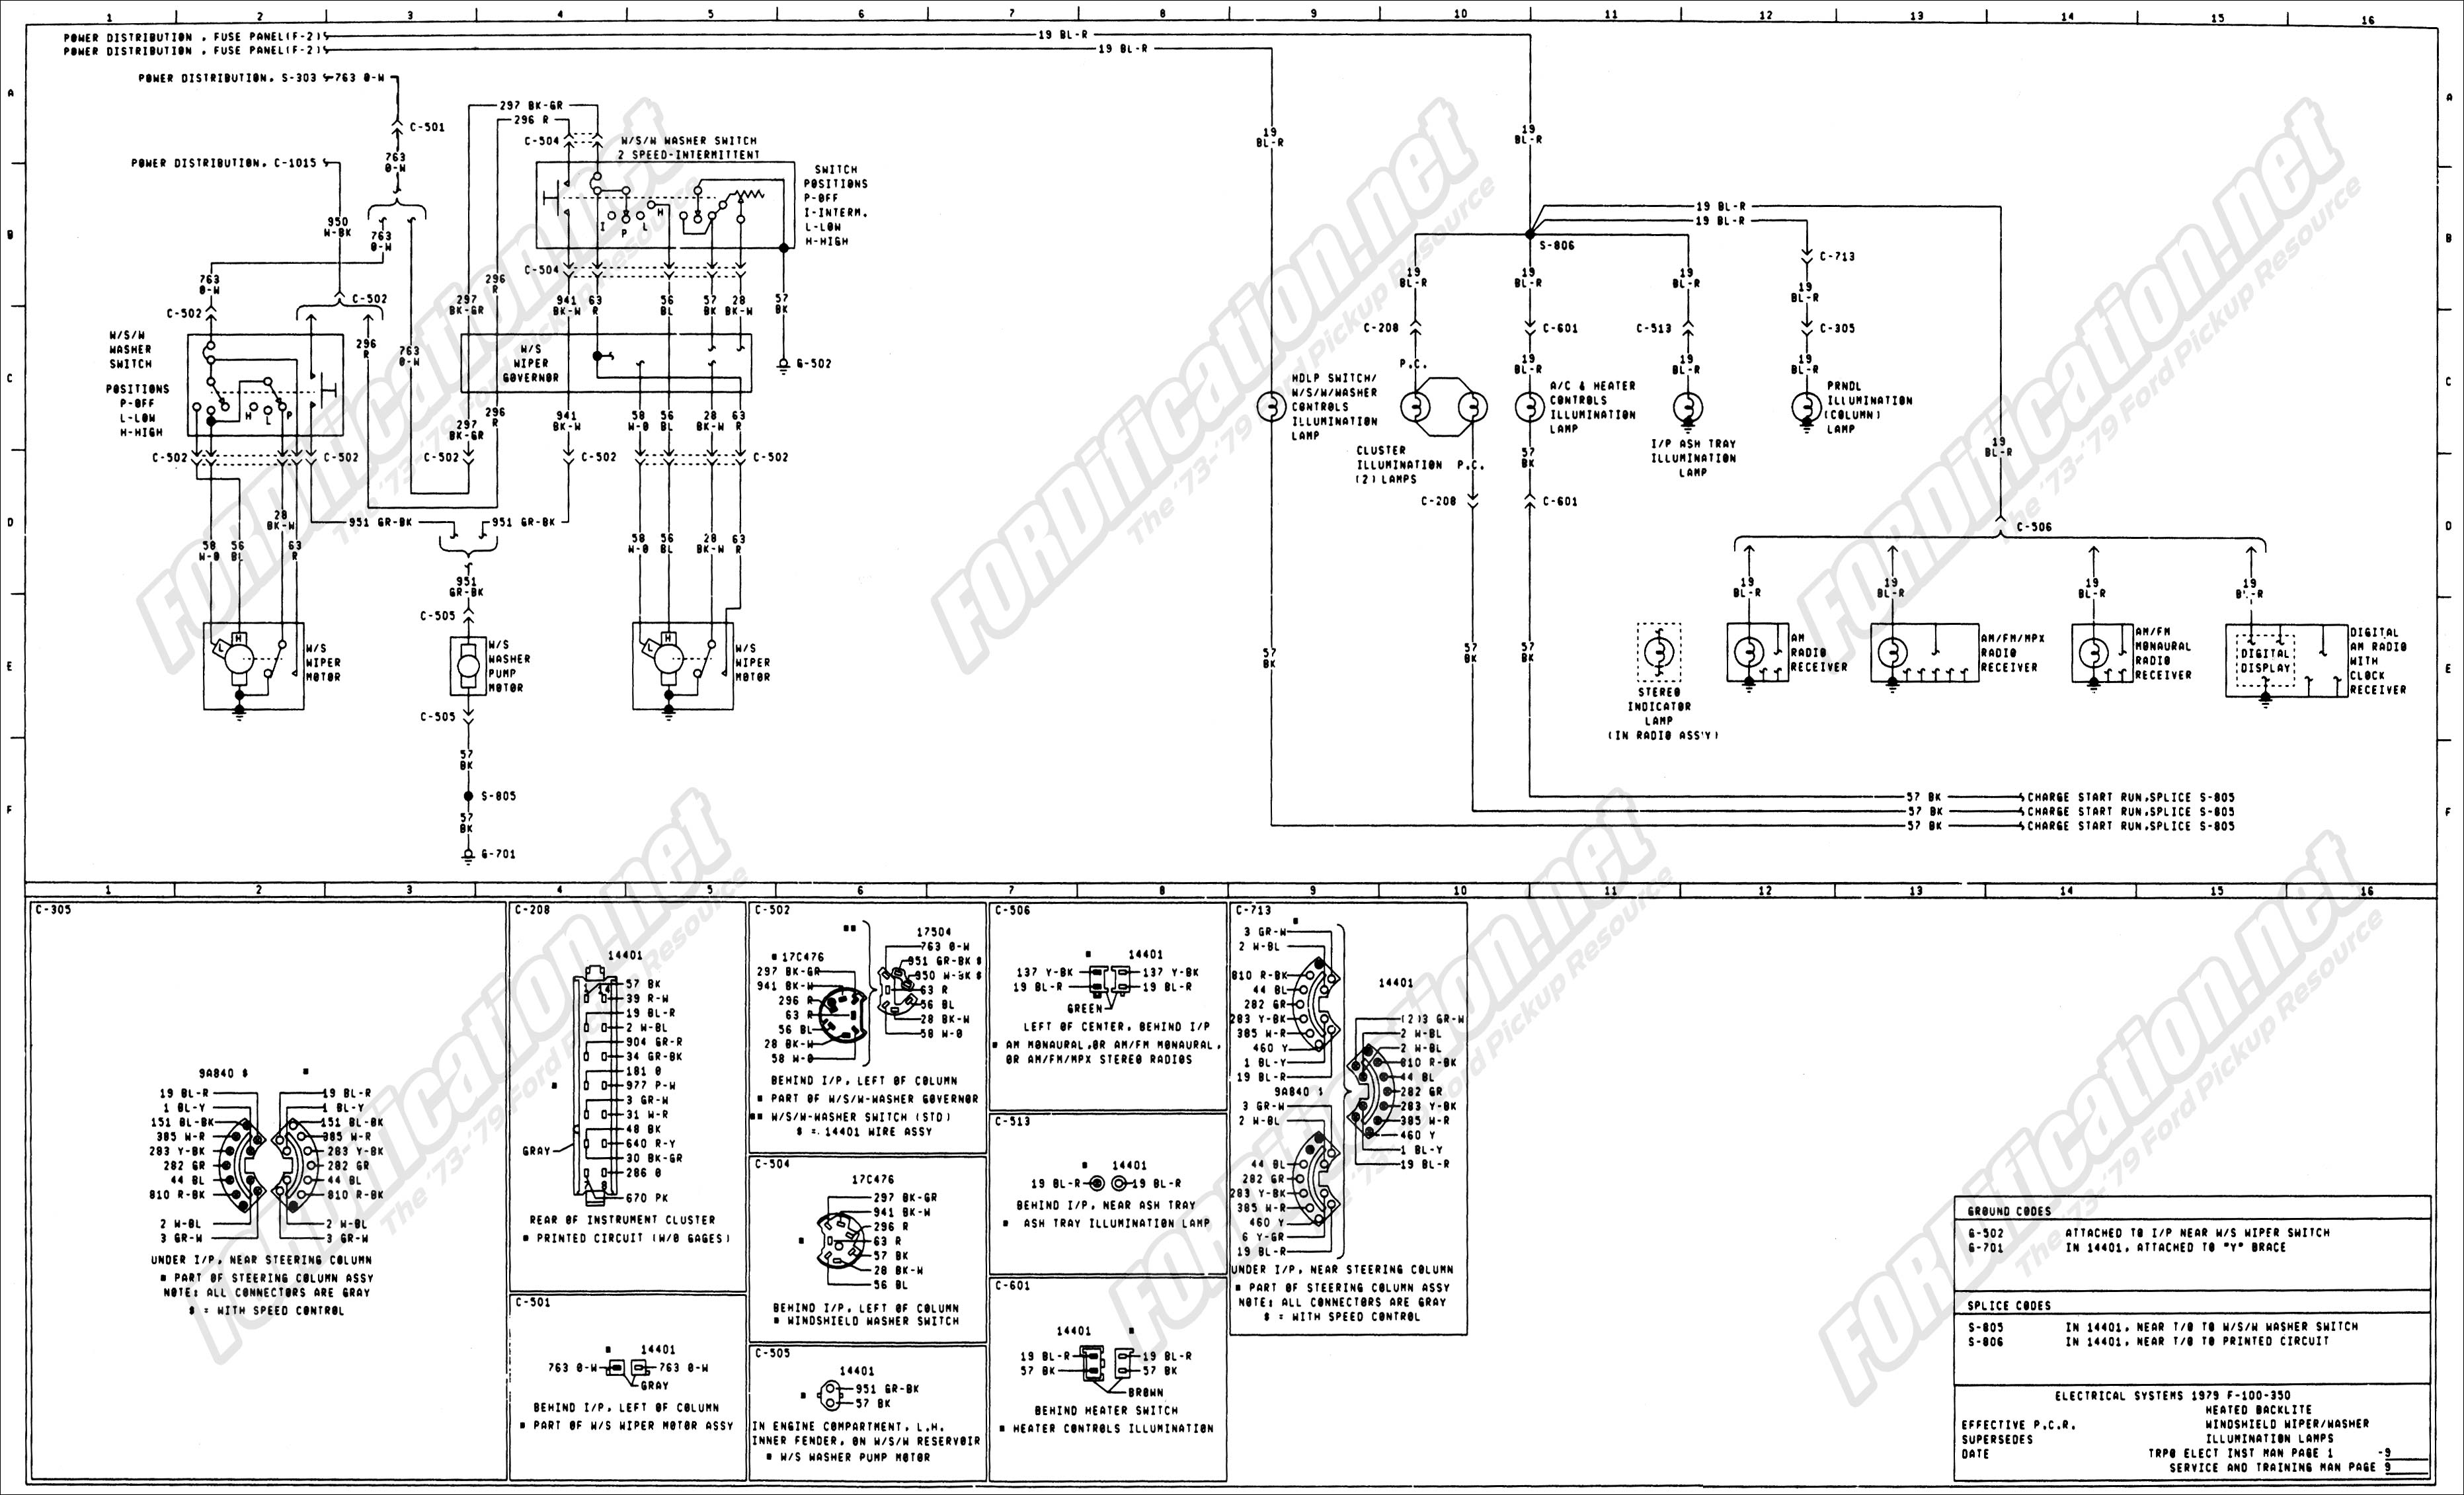 wiring_79master_9of9 1973 1979 ford truck wiring diagrams & schematics fordification net 1999 Ford F-250 Wiring Diagram at honlapkeszites.co